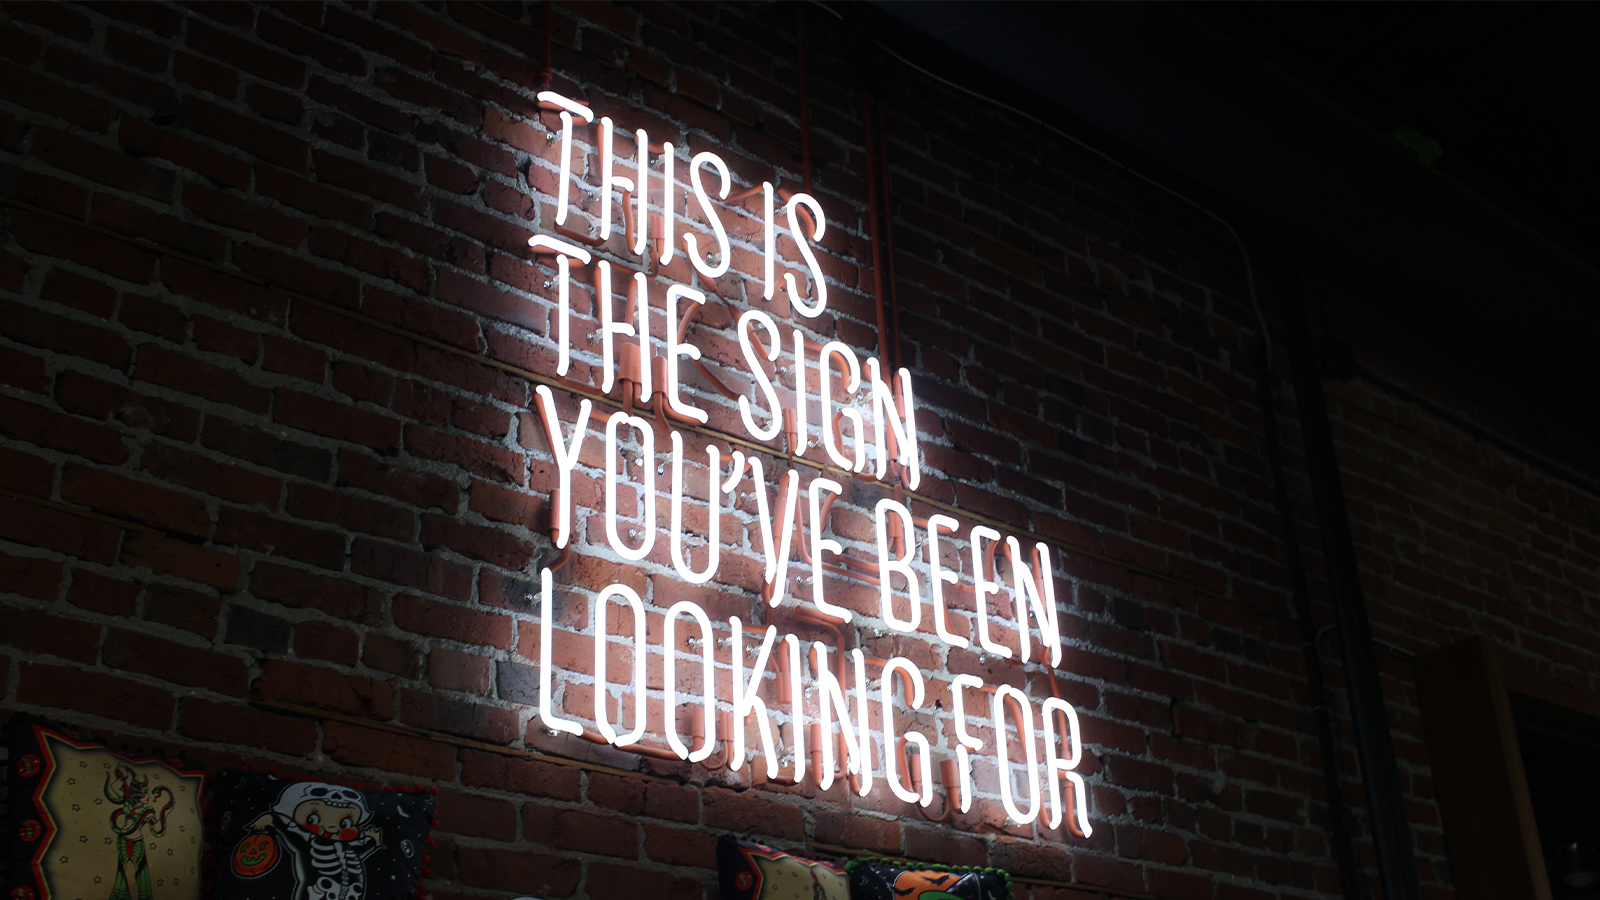 a neon sign that says